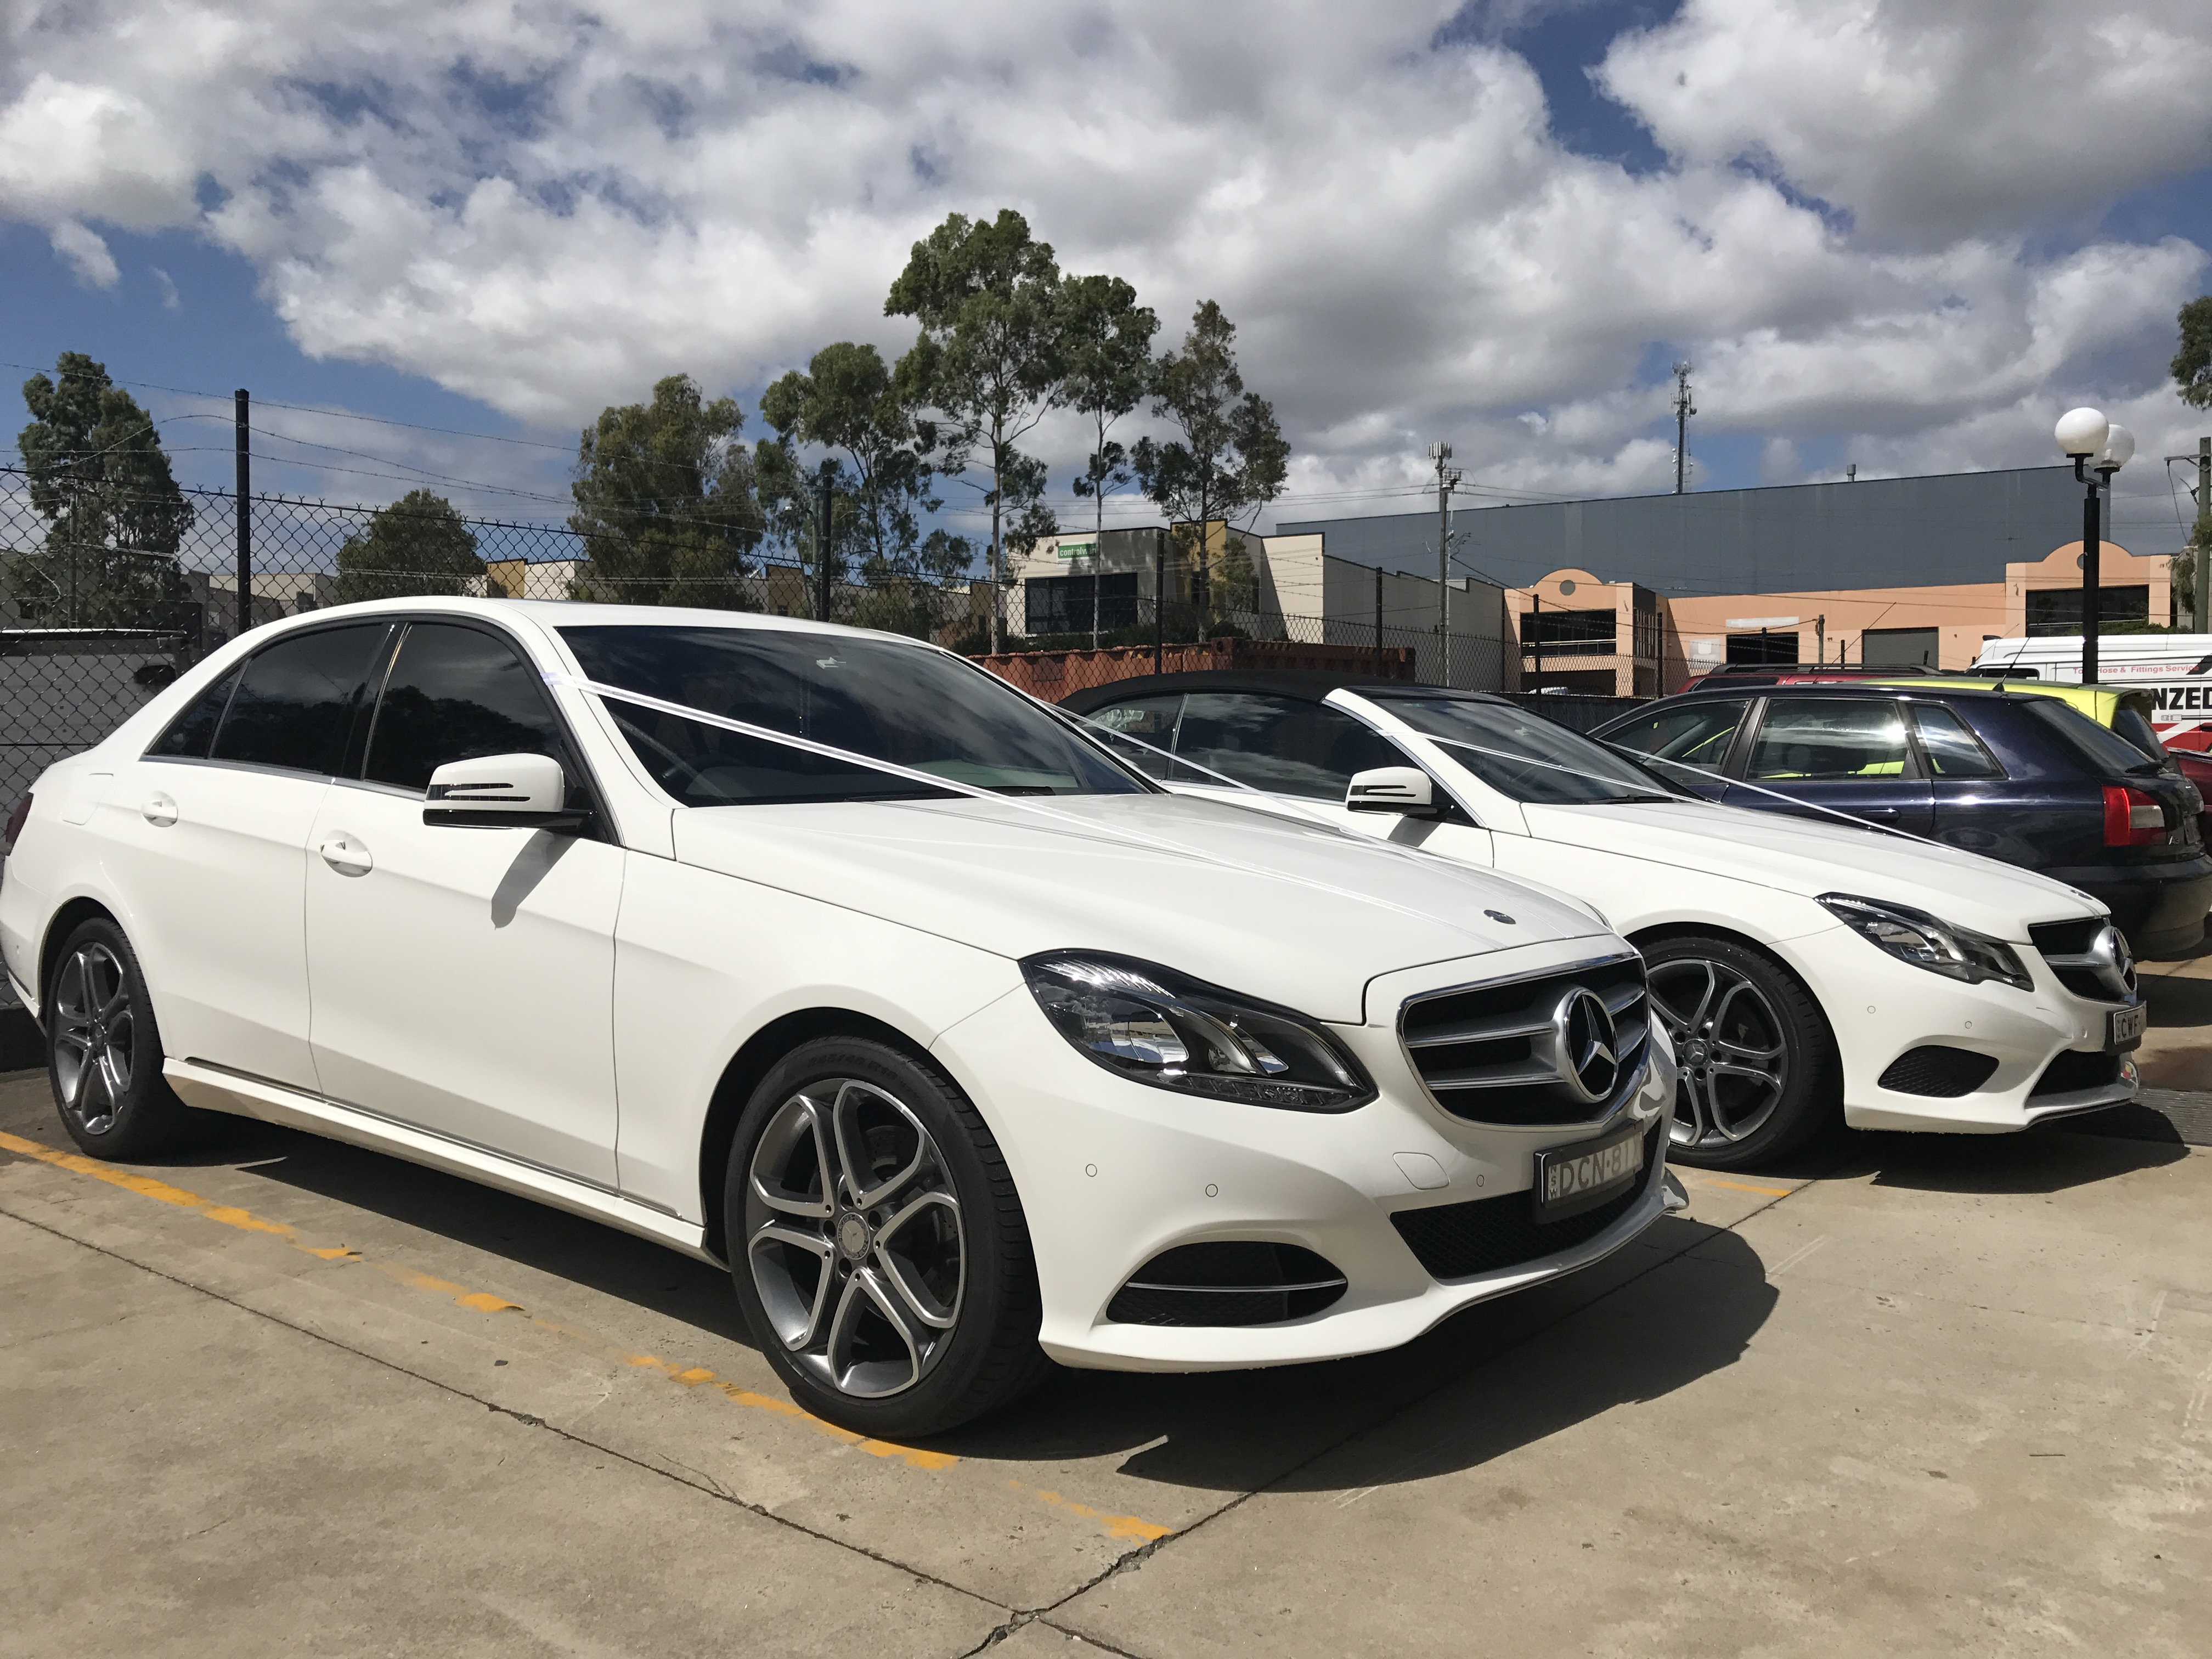 Hire Car From Sydney Airport To Wollongong